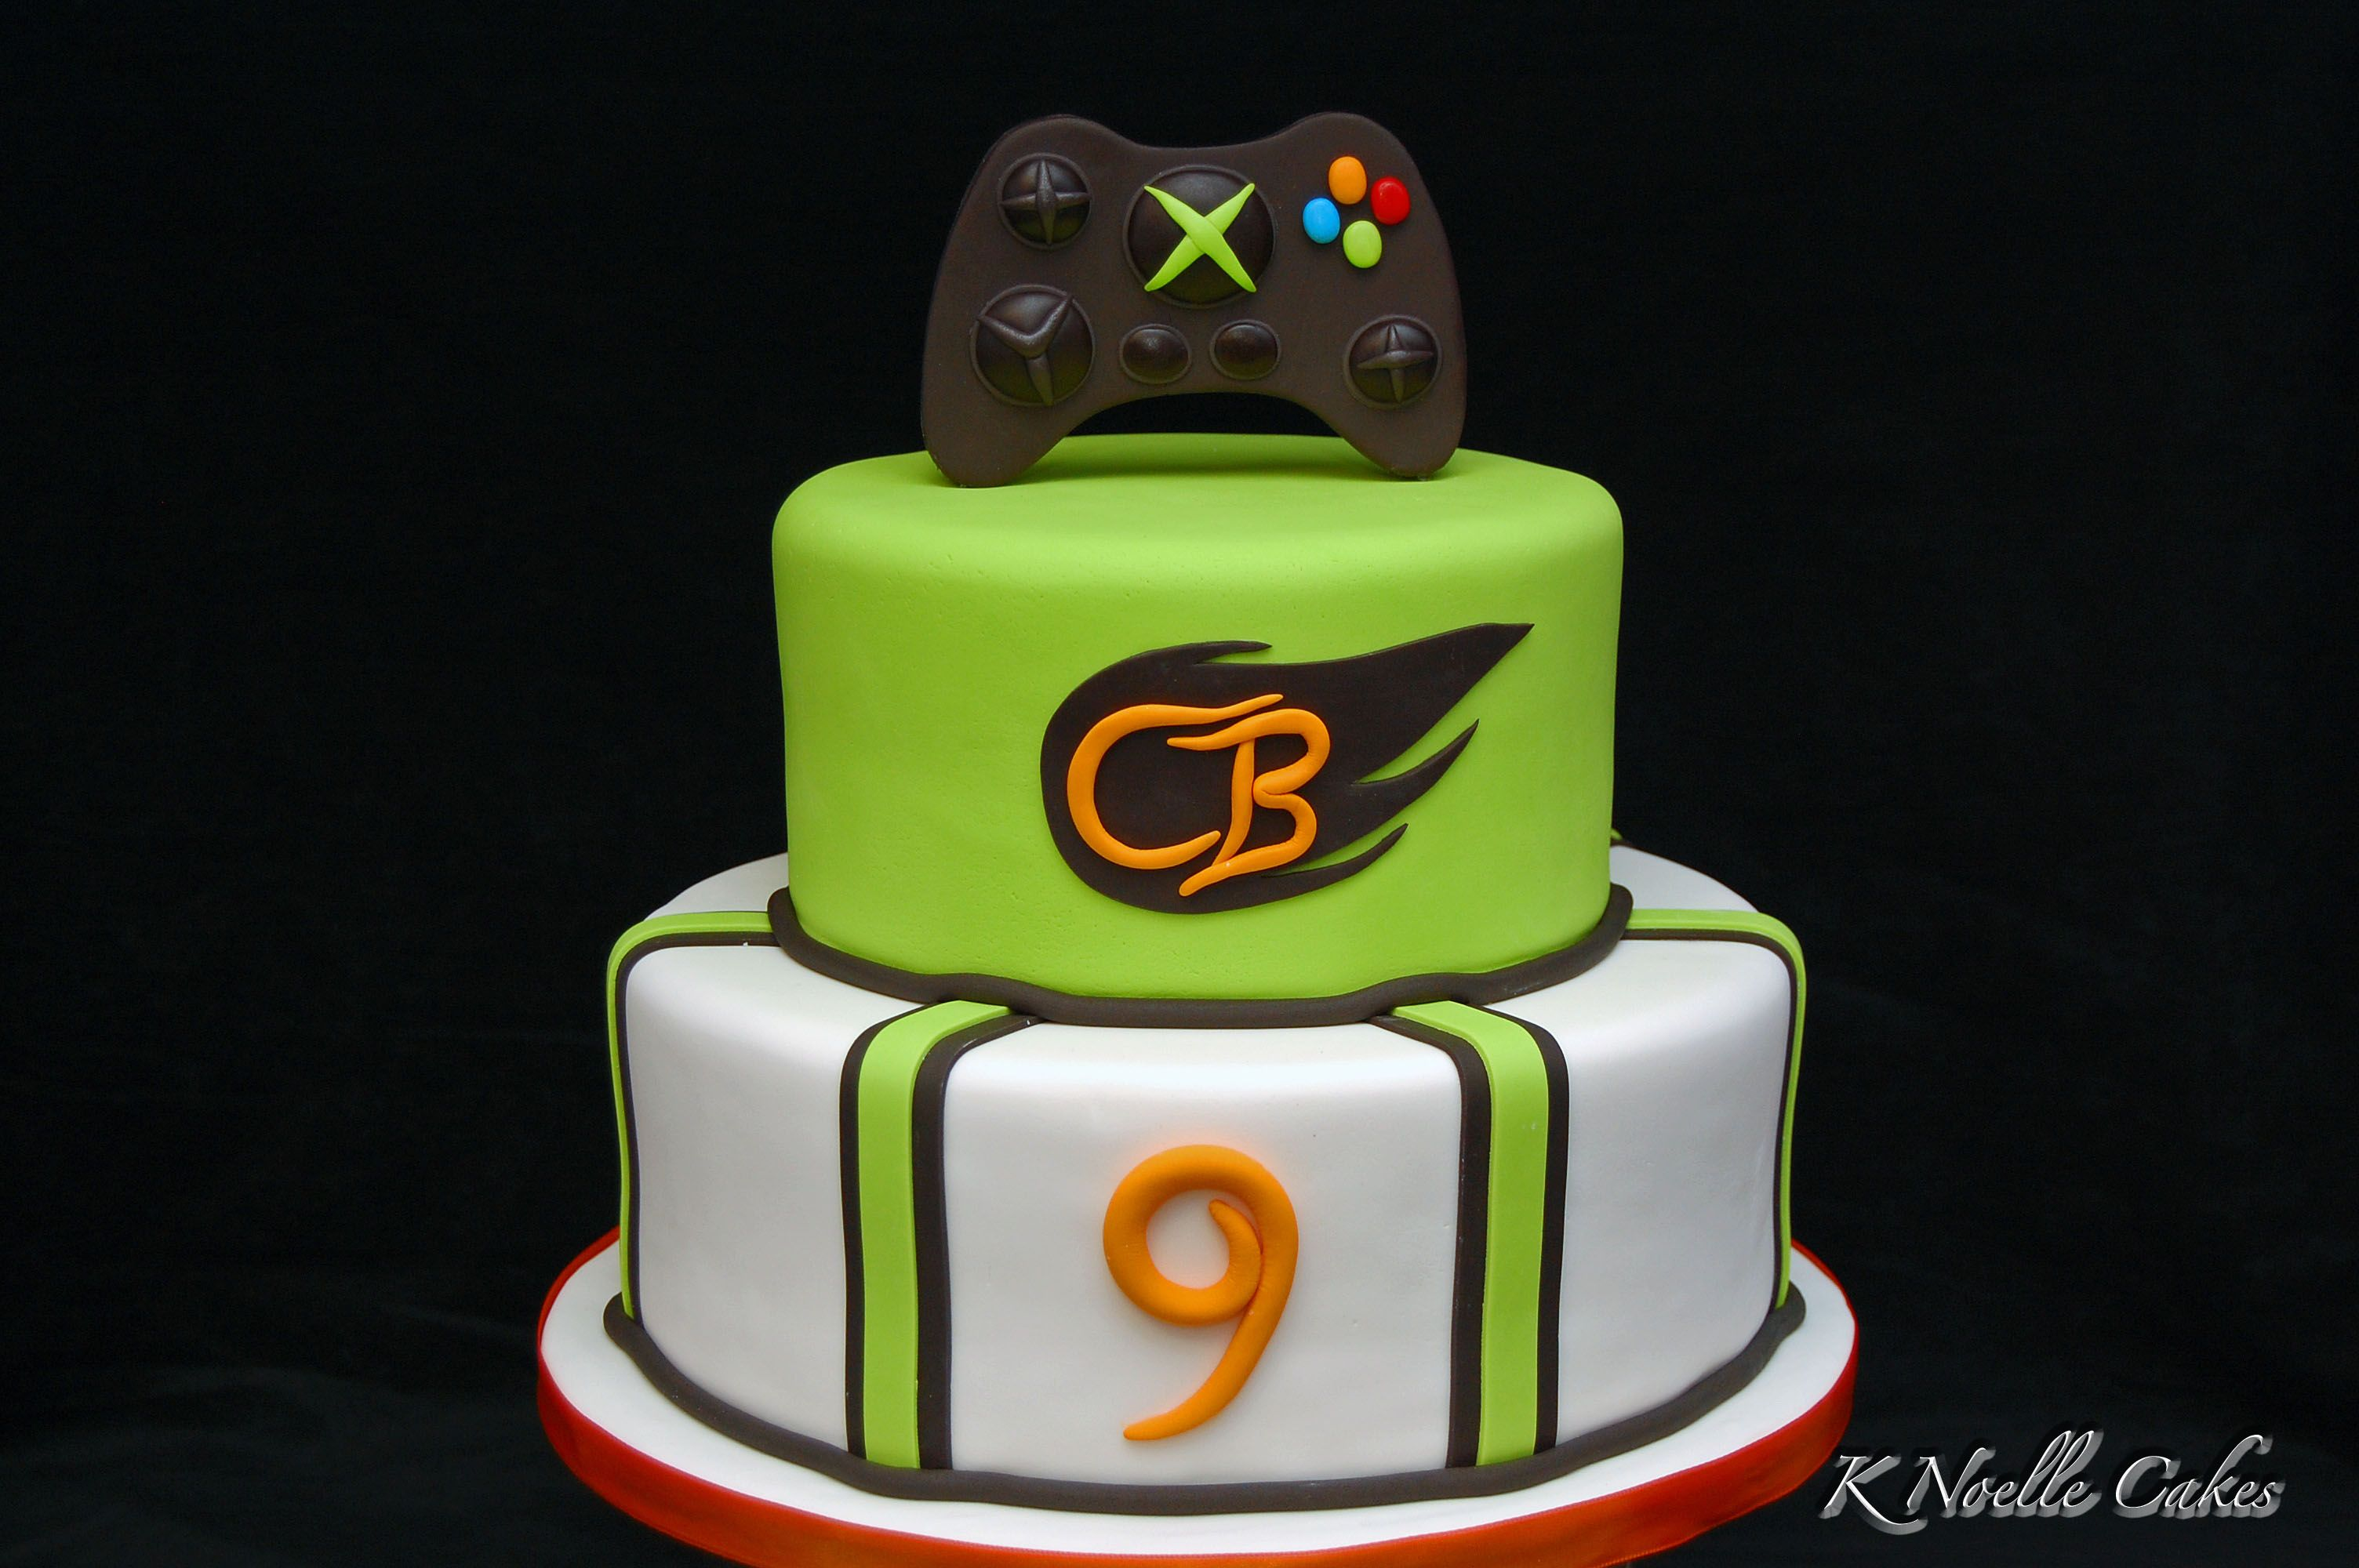 Video Game theme cake by K Noelle Cakes Video game cakes